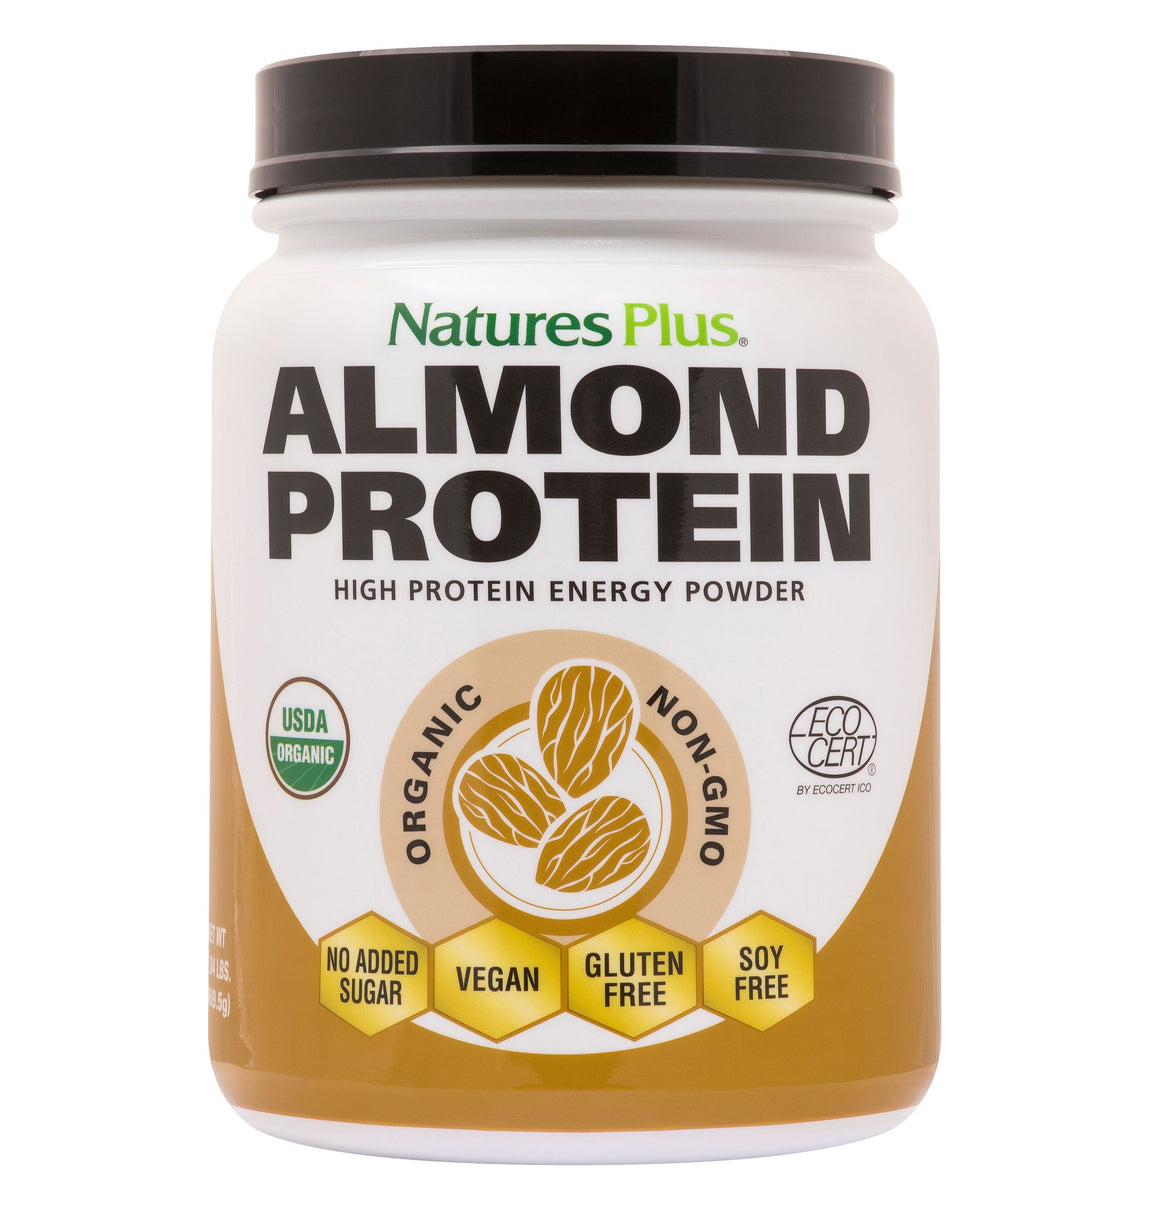 A jar of Nature's Plus Organic Almond Protein